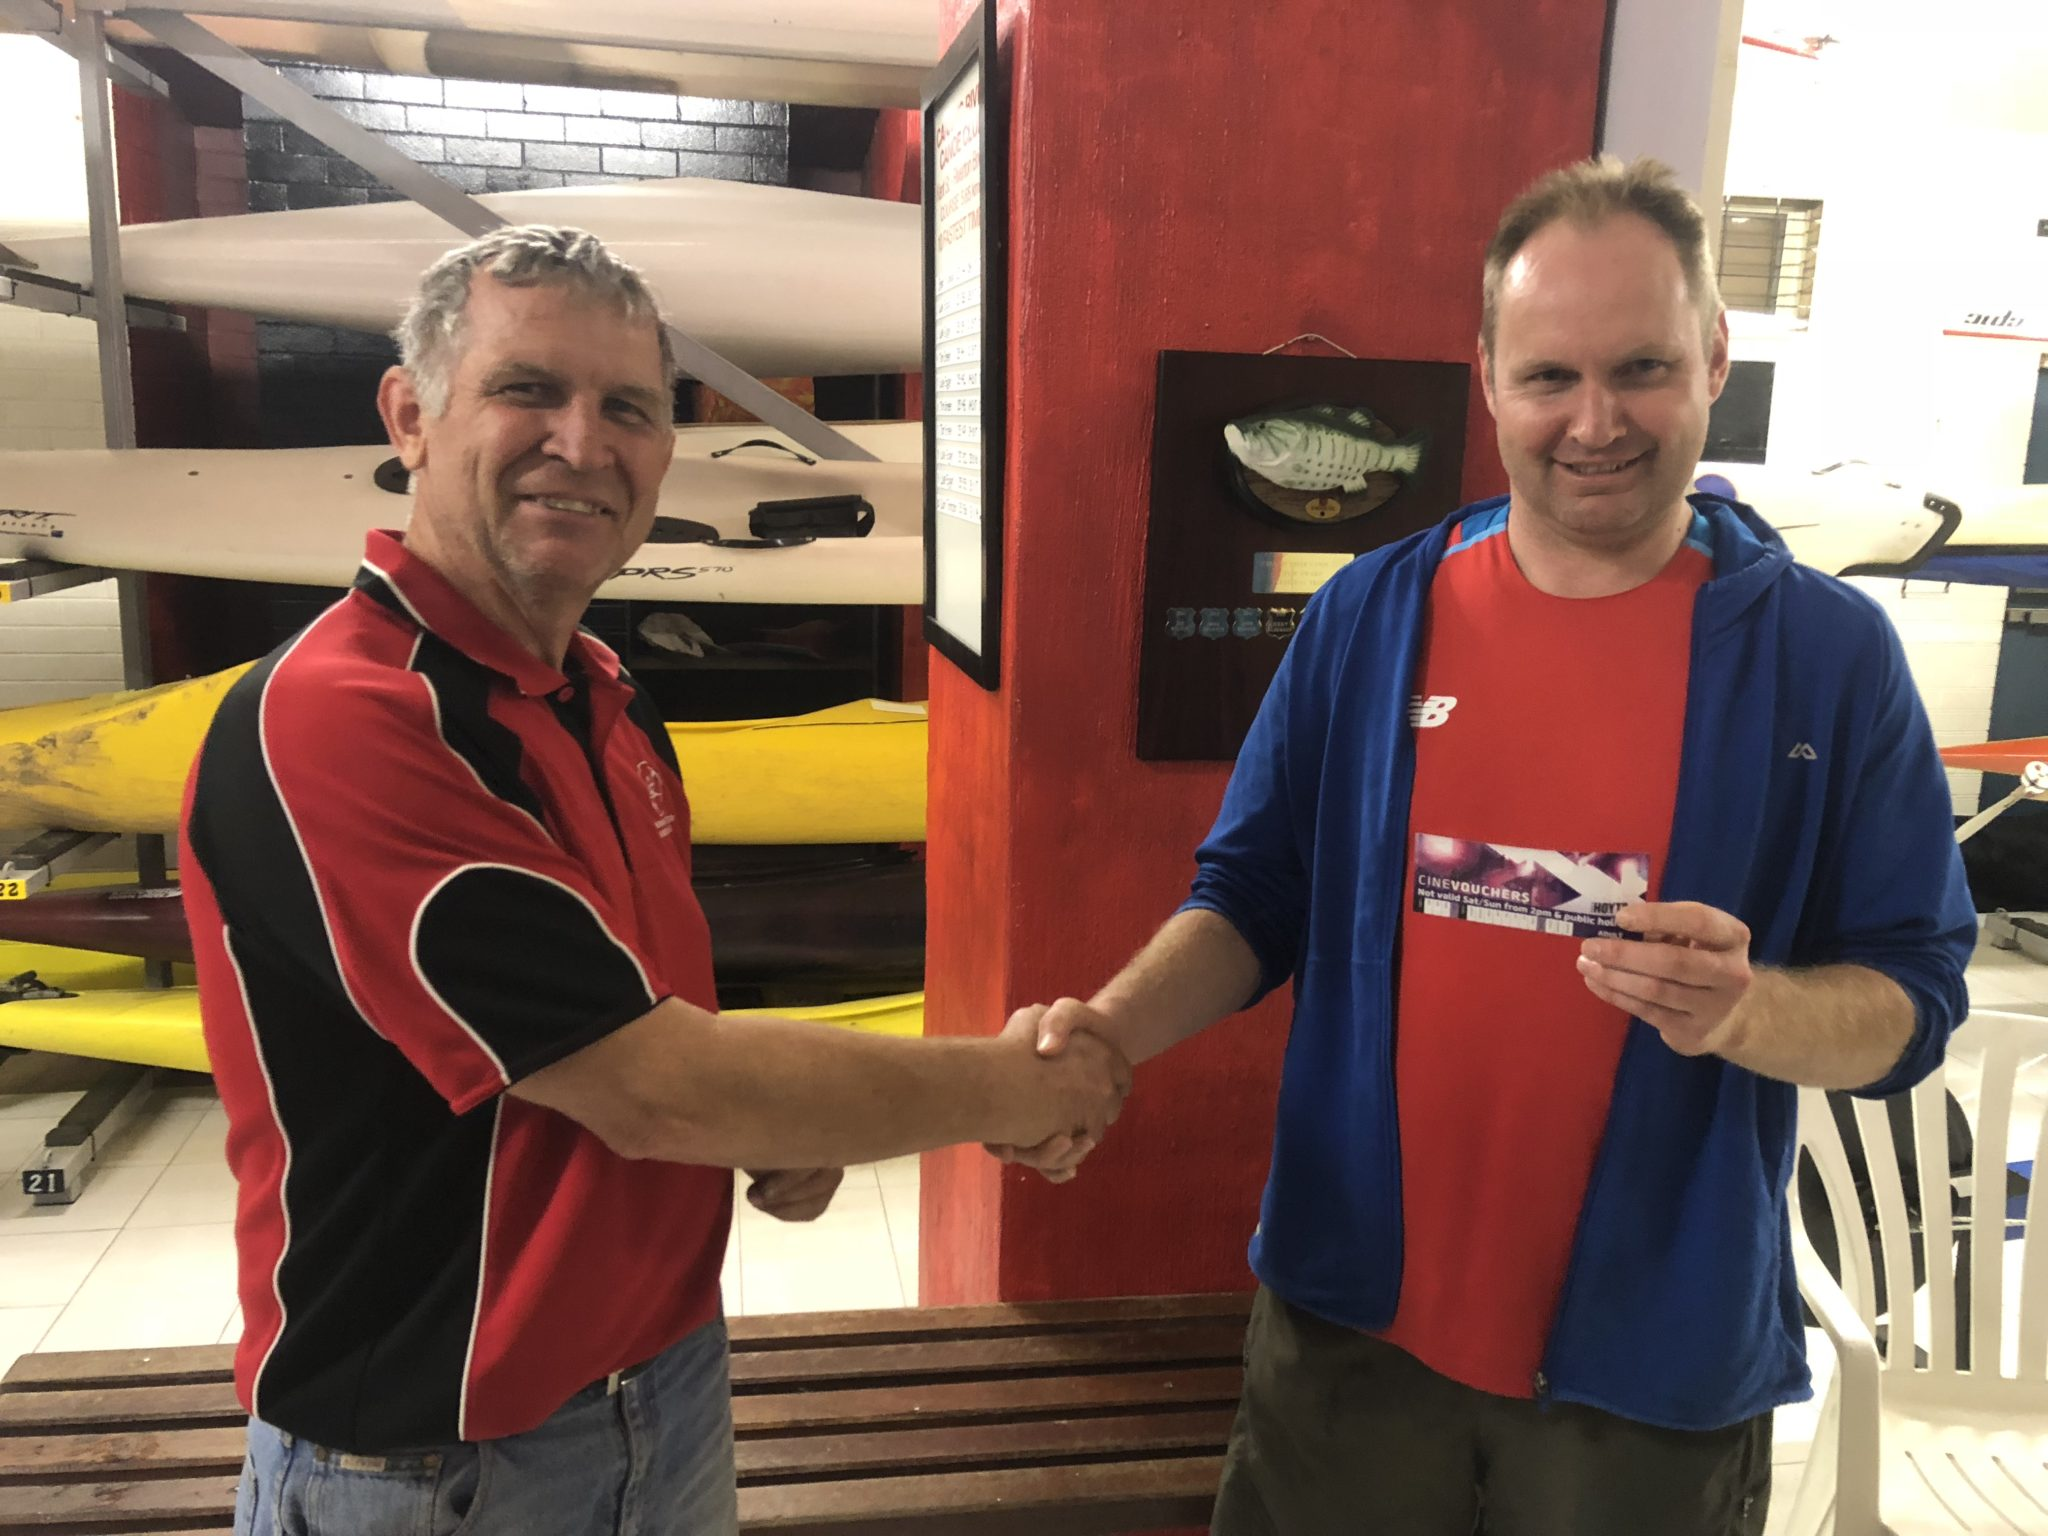 Tues 27th November 2018 : Tonight's photo shows club member Dave Brown presenting Kieran English with a movie voucher.